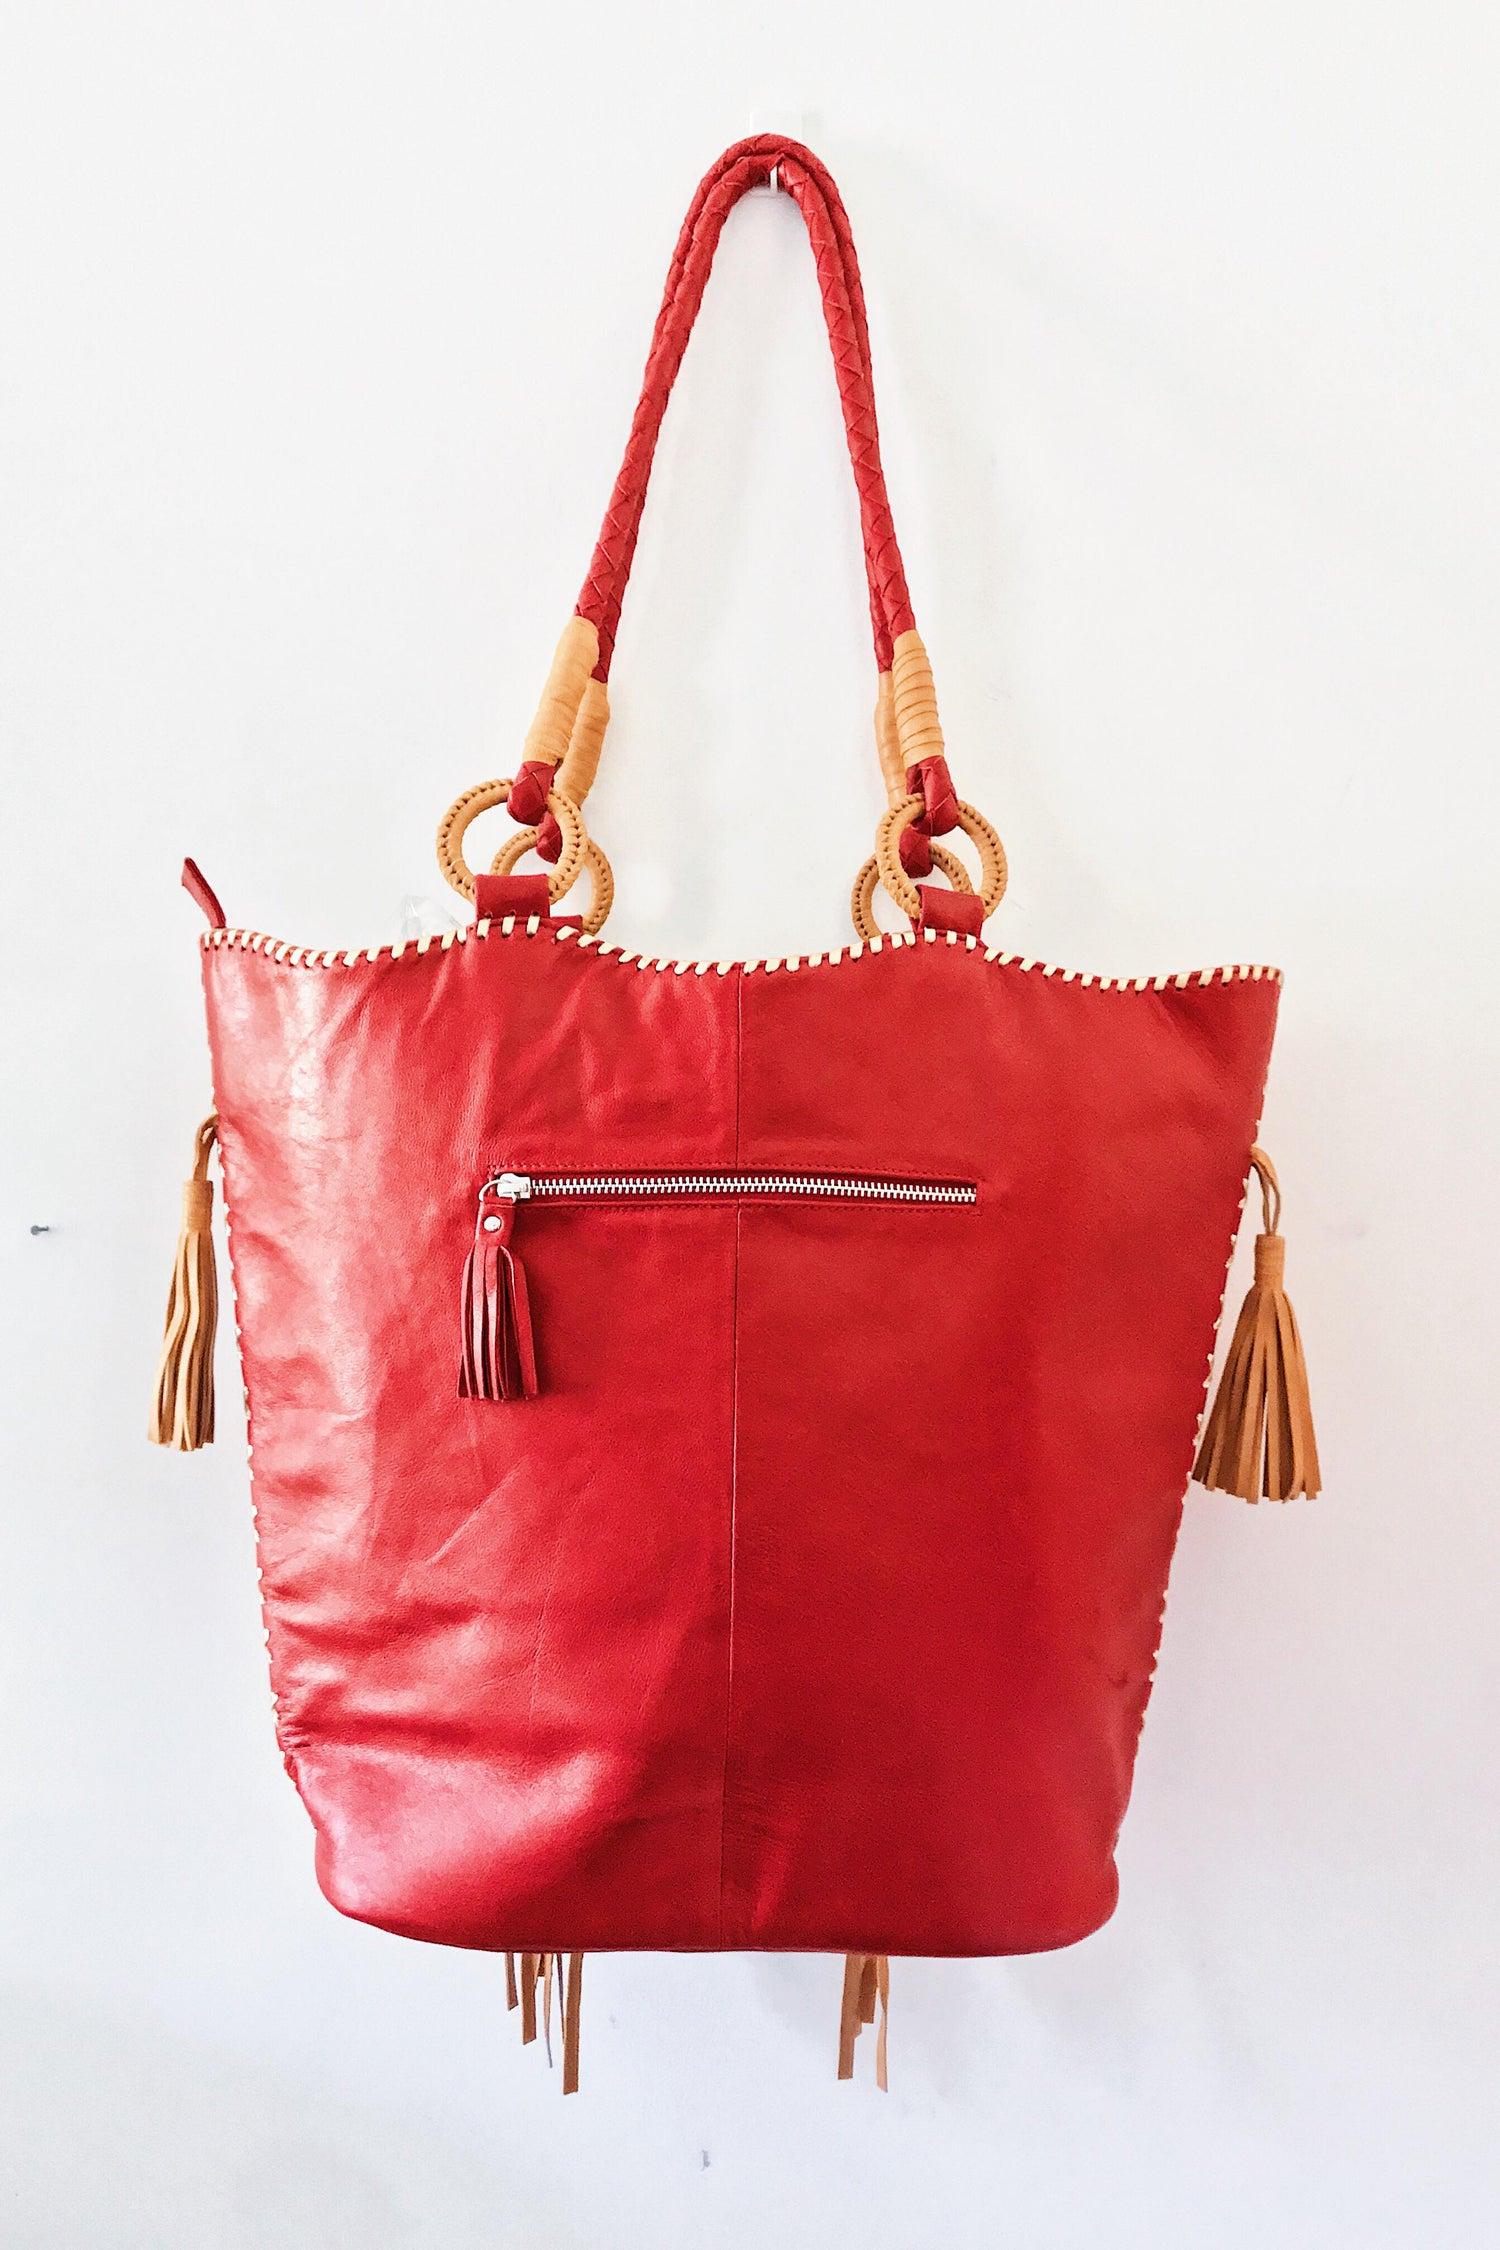 Image of LES TROPIC LEATHER TOTE